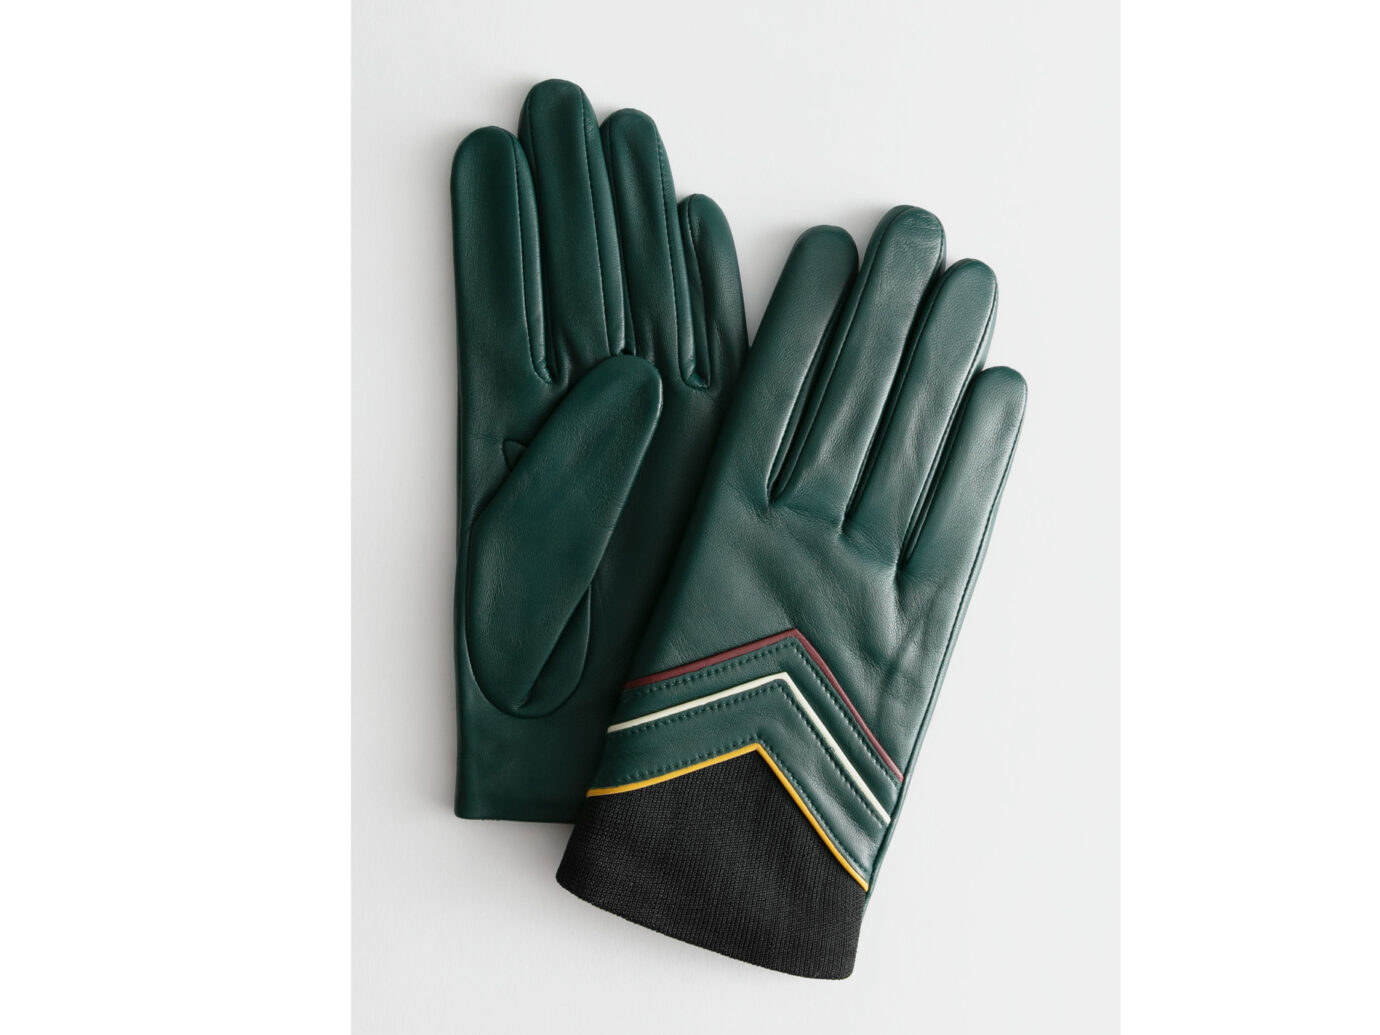 & Other Stories Arrow Piping Leather Gloves